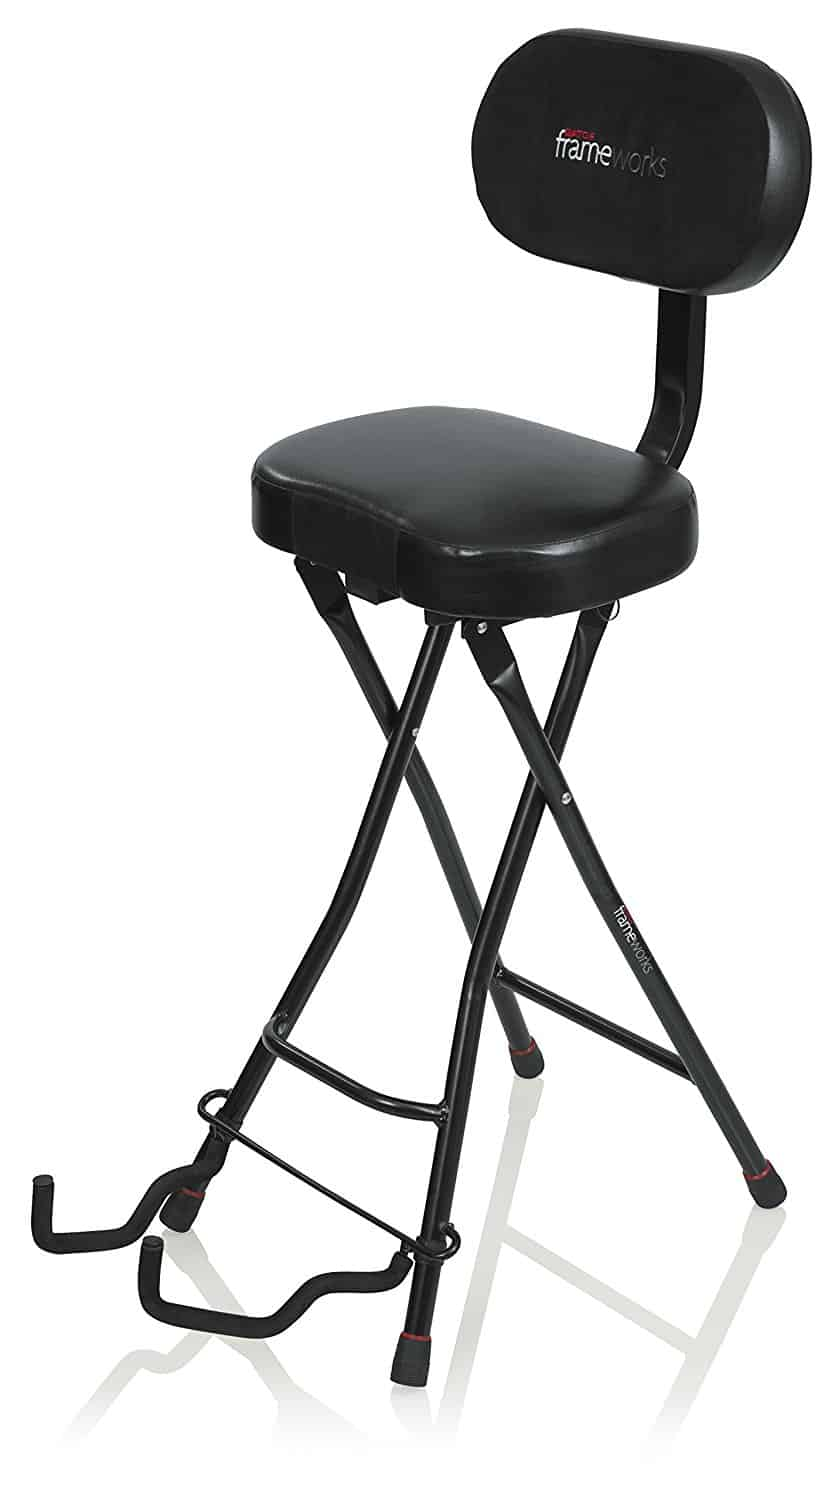 Gator Framework Guitar Chair  sc 1 st  Audio Mastered & The Best Guitar Chair \u2013 The Stool You Need To Improve Your Playing ... islam-shia.org